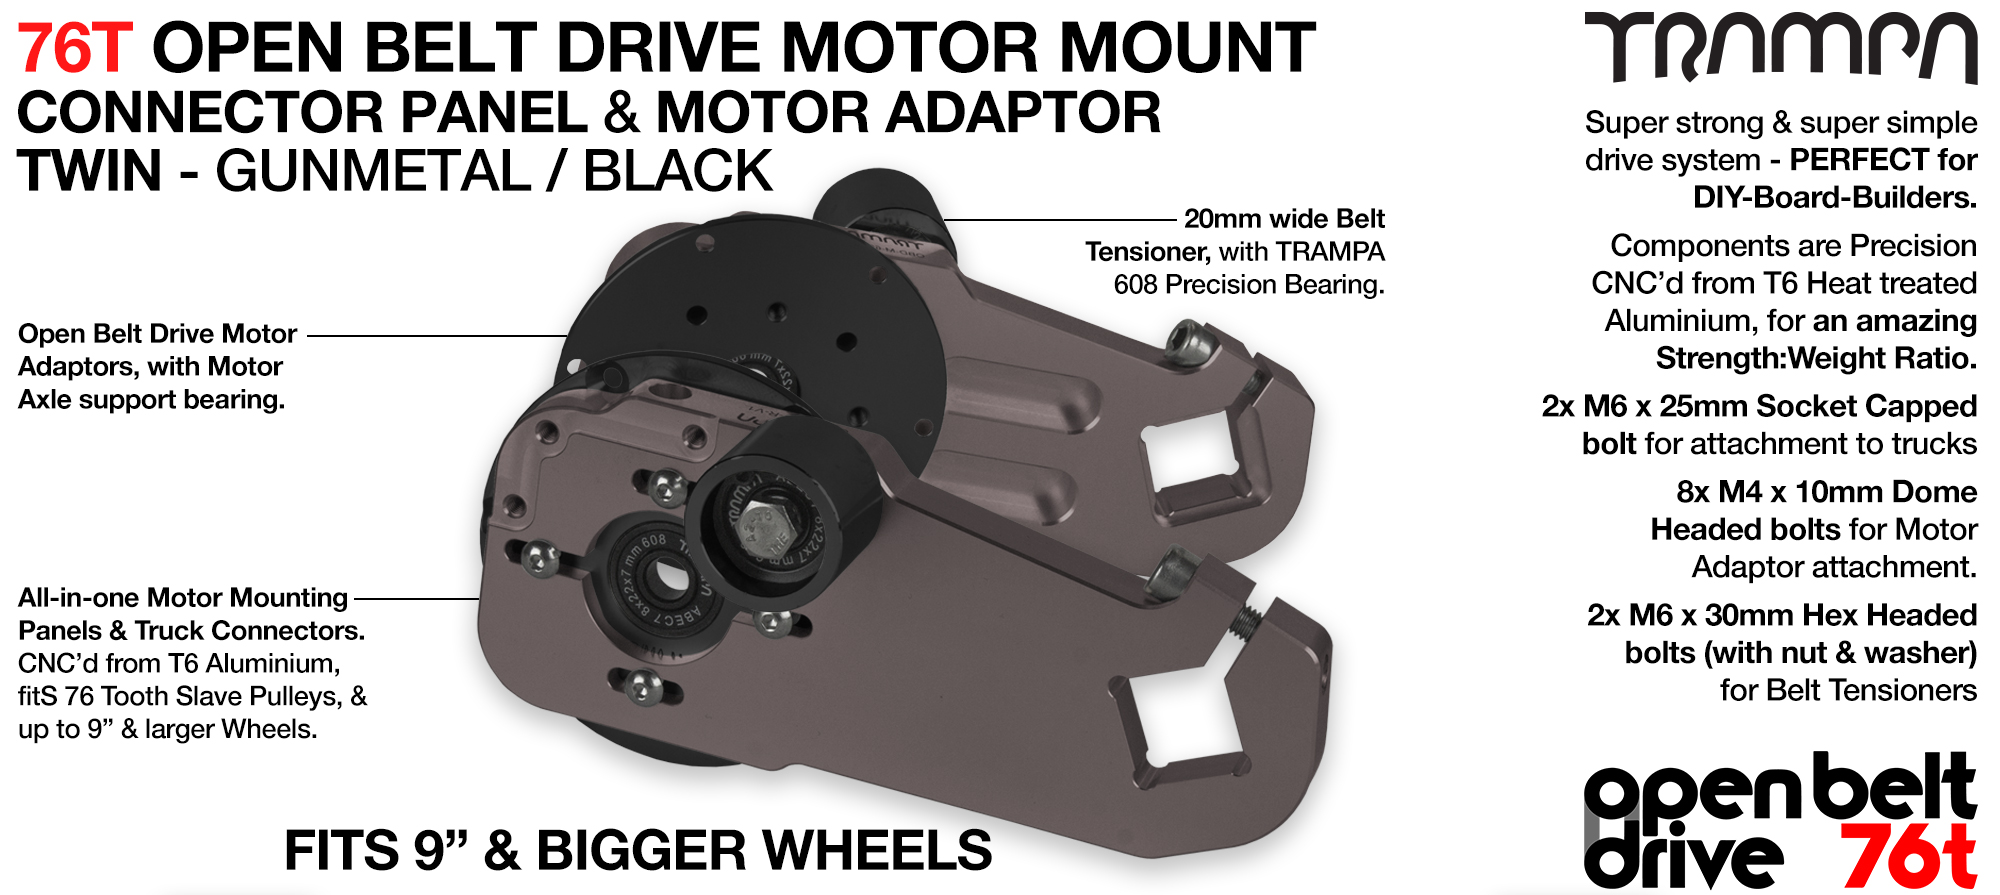 76T Open Belt Drive Motor Mount & Motor Adaptor - TWIN GUNMETAL